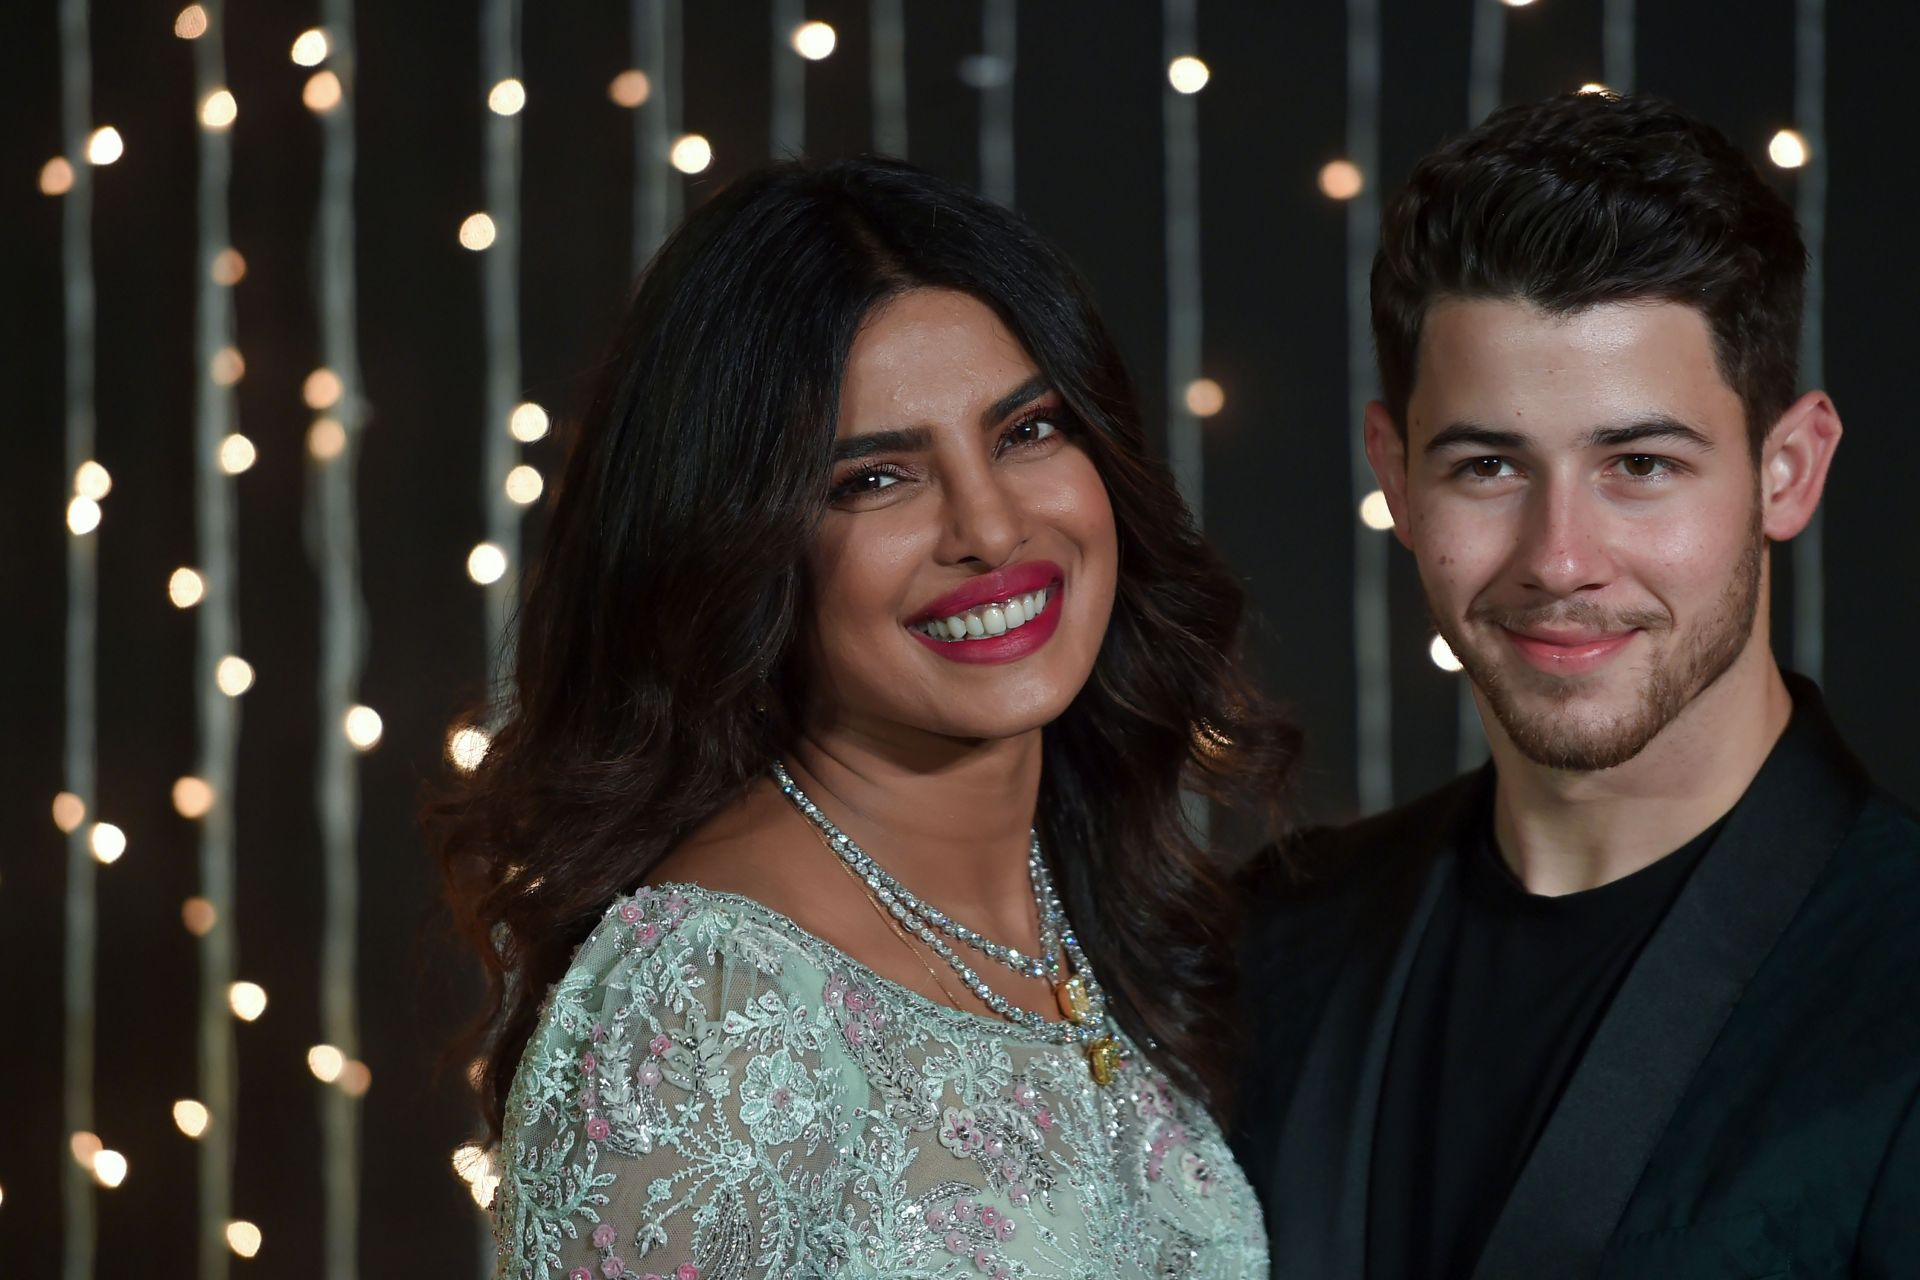 Priyanka Chopra and Nick Jonas just hosted yet another wedding reception